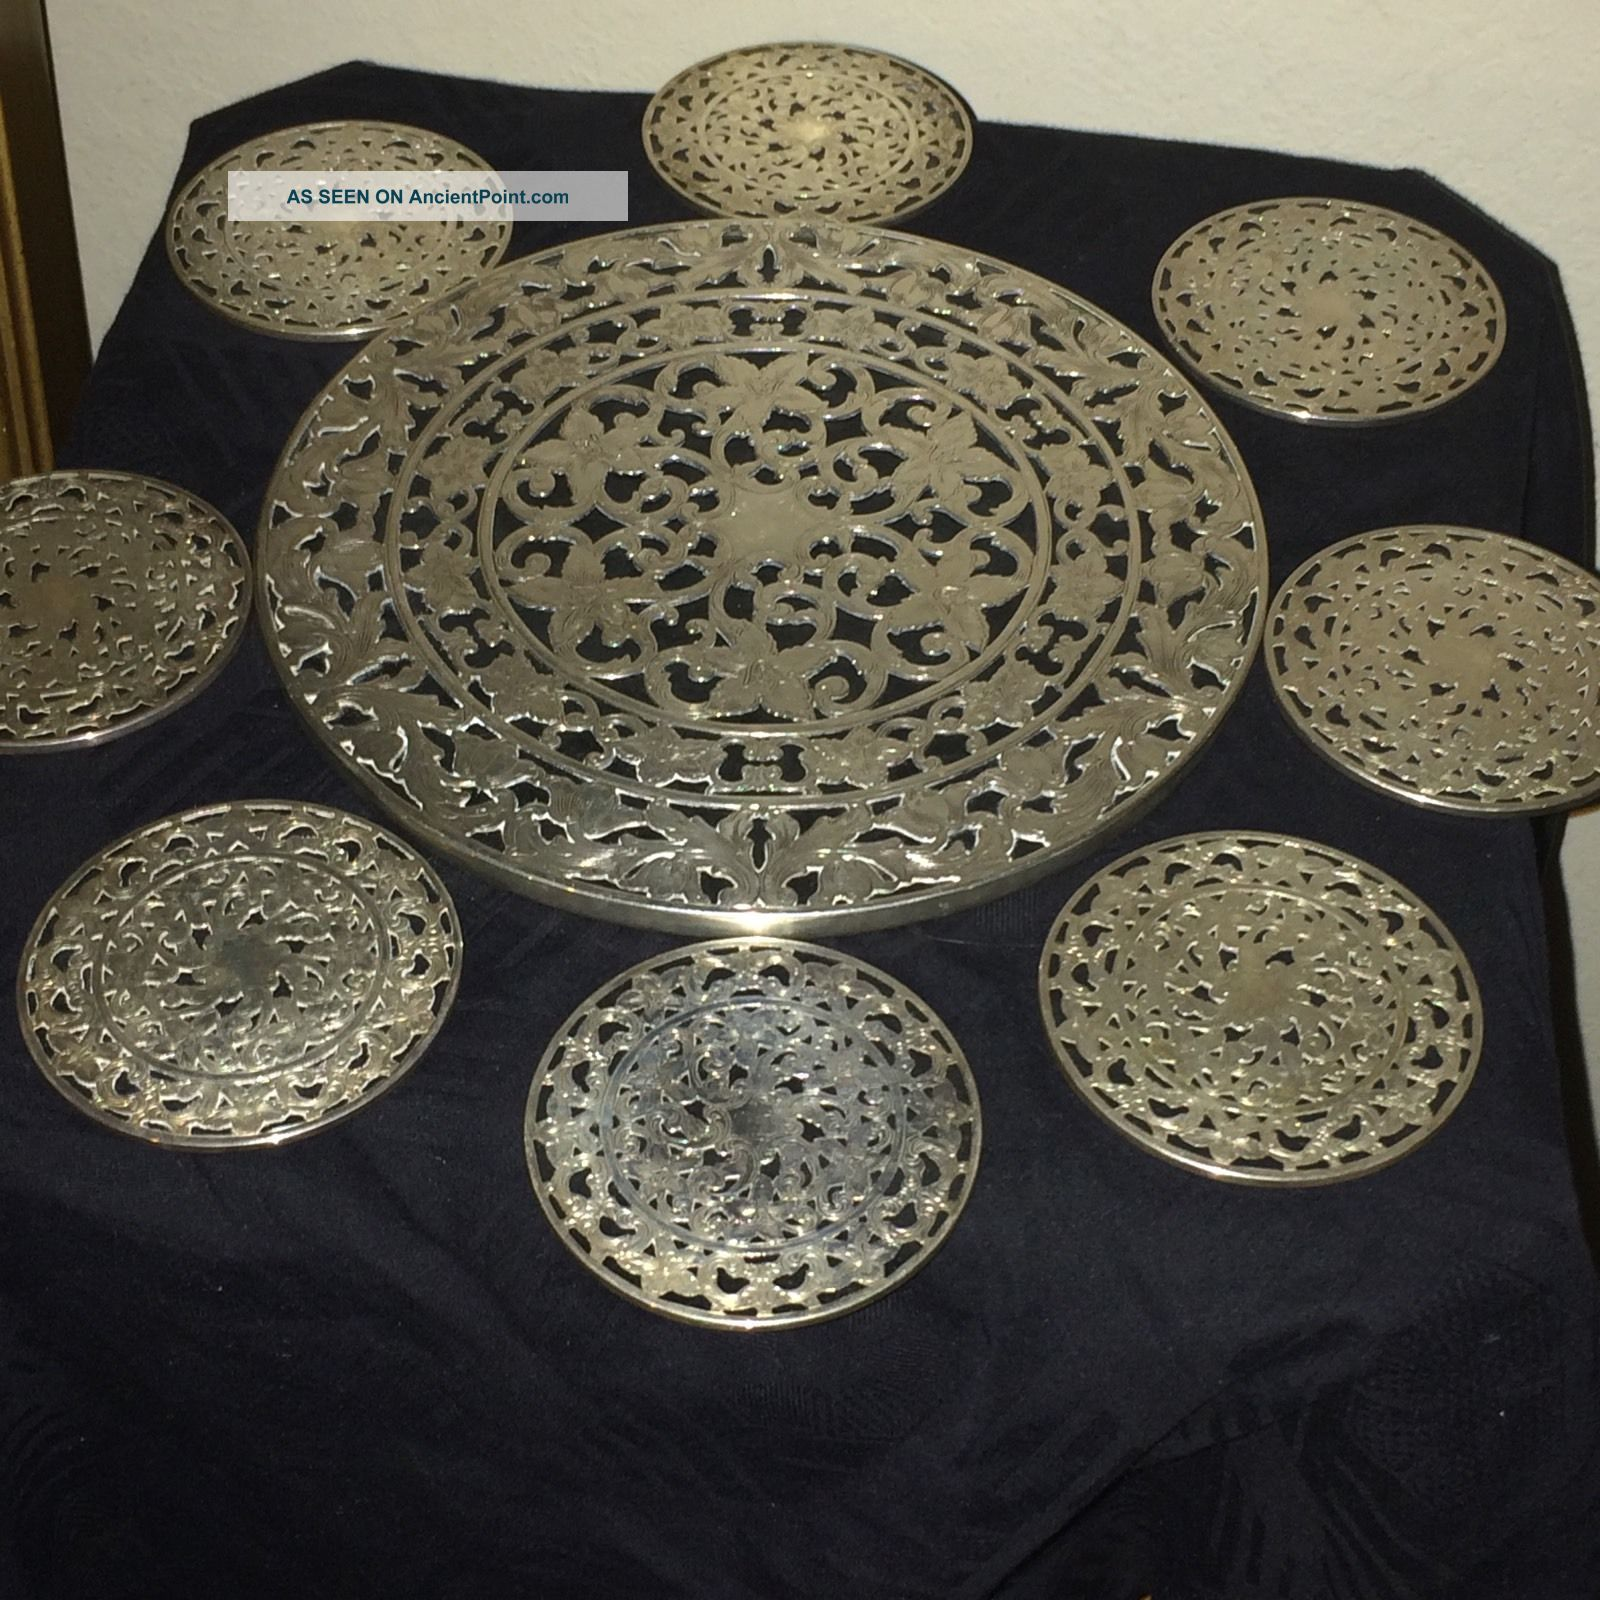 American Sterling Silver And Glass Coasters And Trivet Dishes & Coasters photo